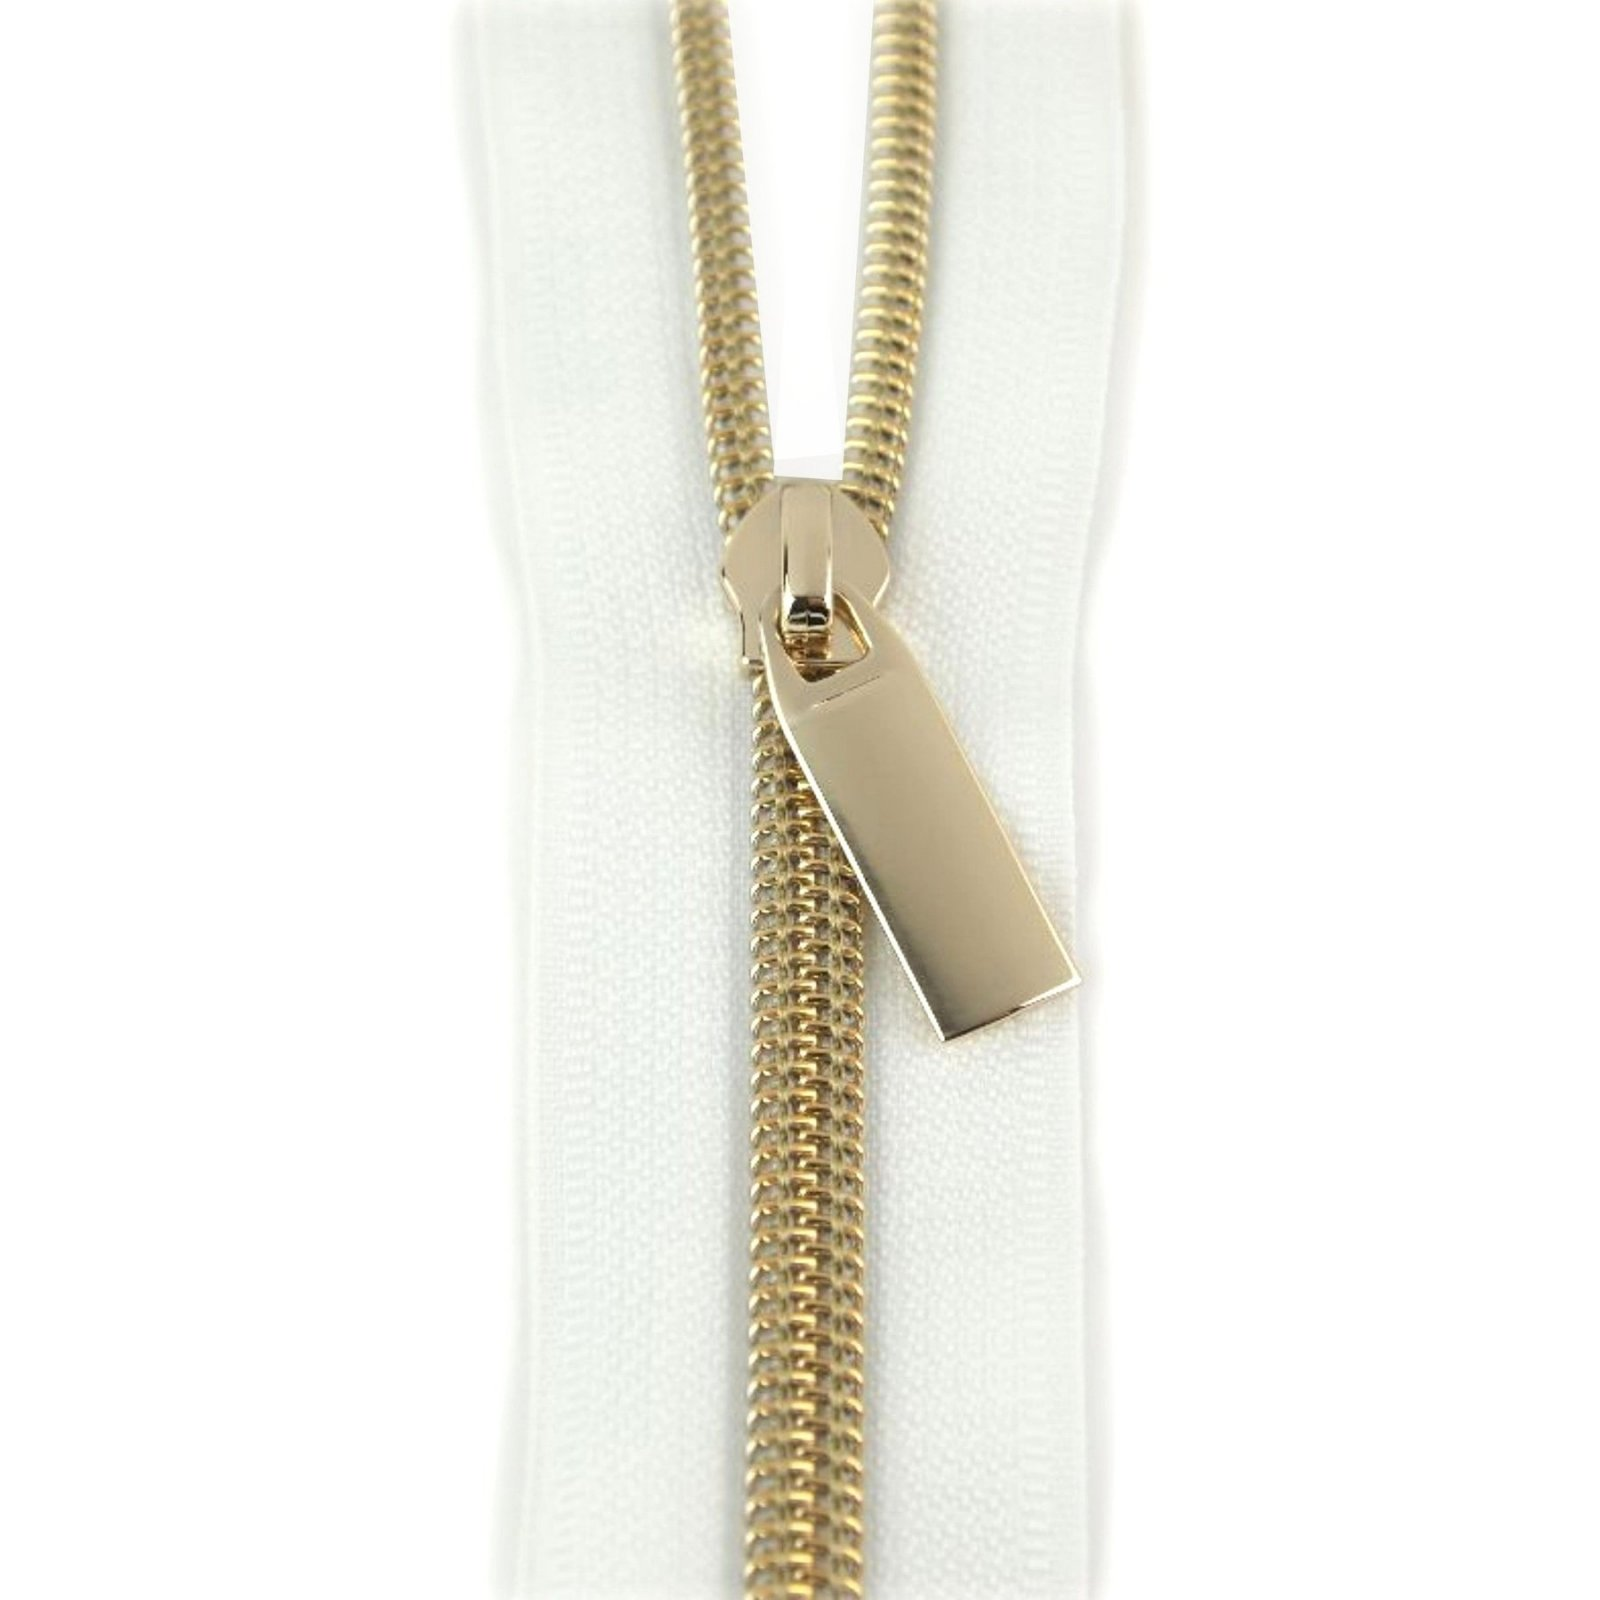 Zippers By The Yard White Tape Light Gold Teeth #5